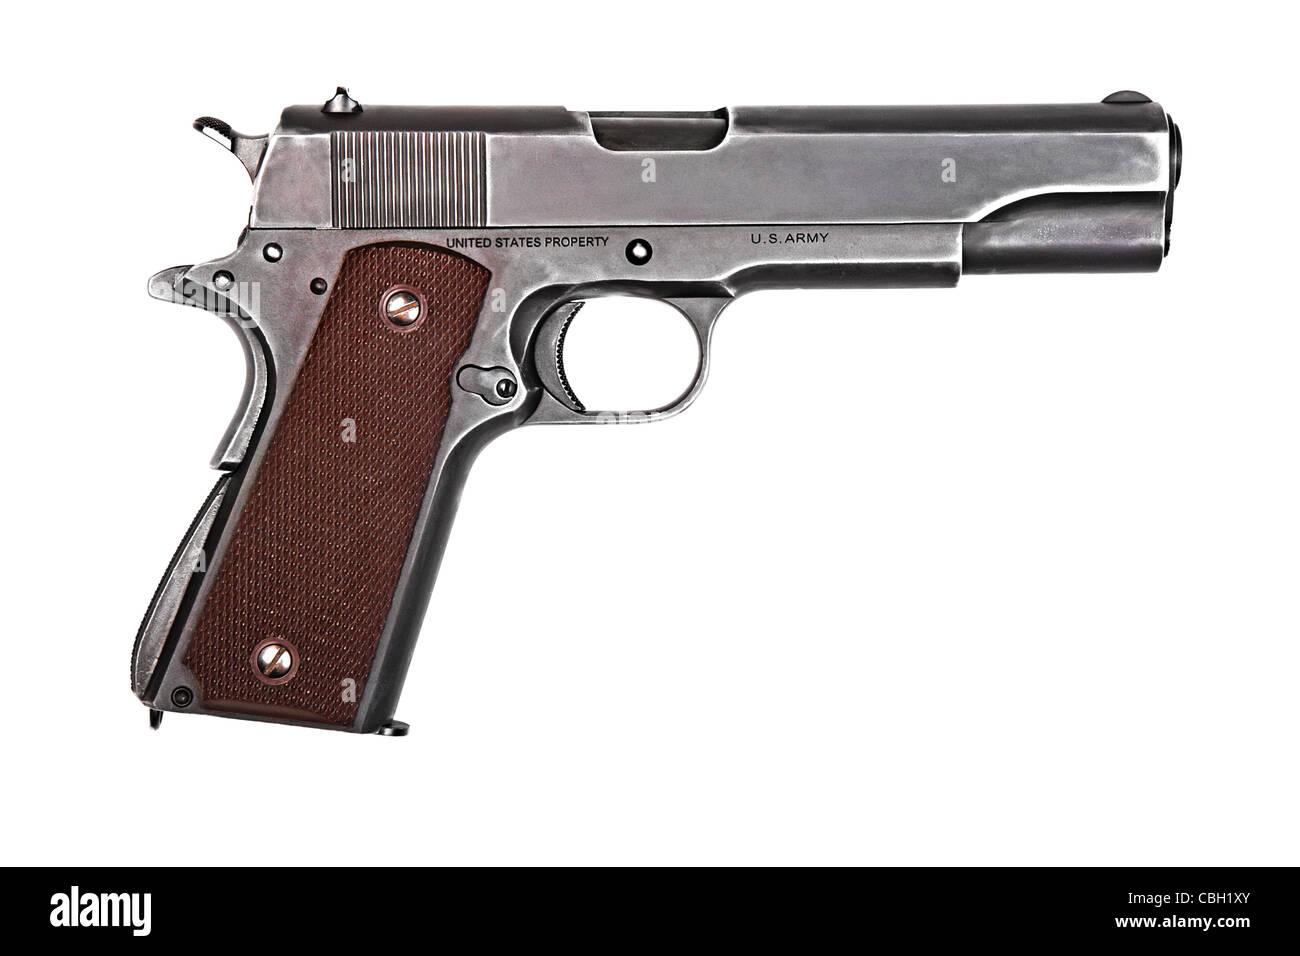 Legendary U.S. Army handgun Colt 1911A1 isolated on white background. Military model (gray color). - Stock Image